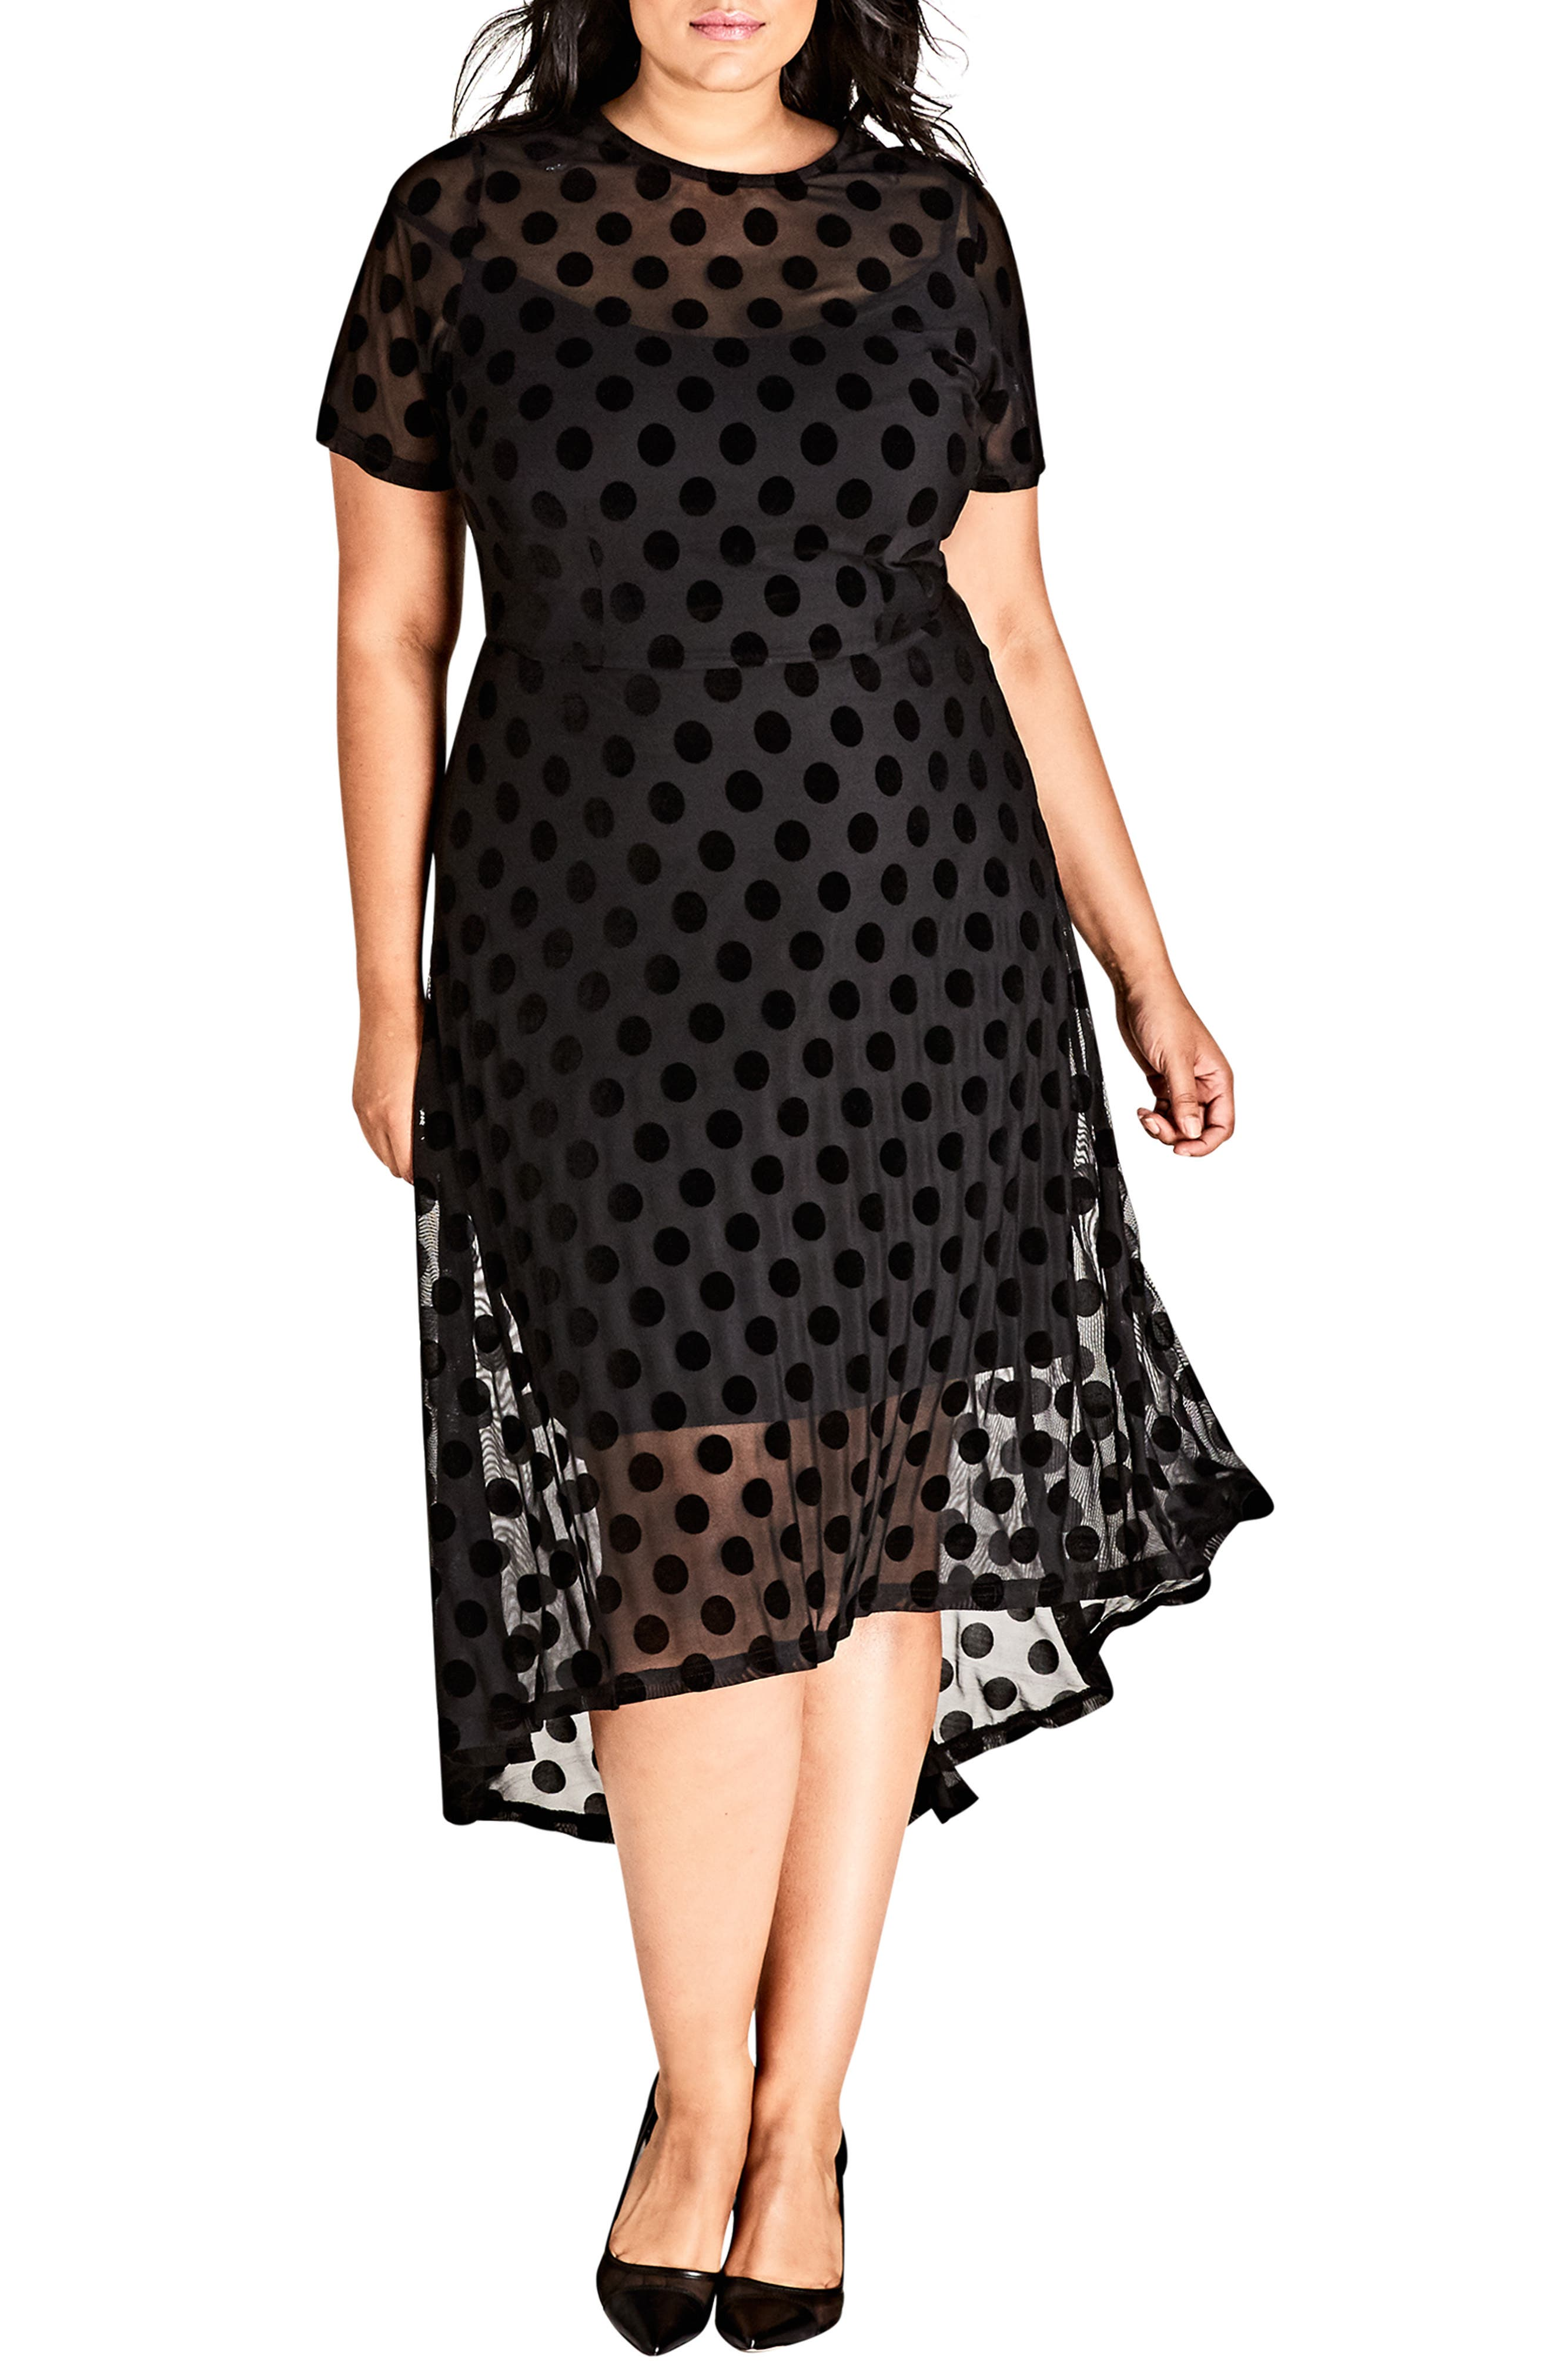 1950s Plus Size Dresses, Swing Dresses Plus Size Womens City Chic Spot Flock Dress $44.50 AT vintagedancer.com